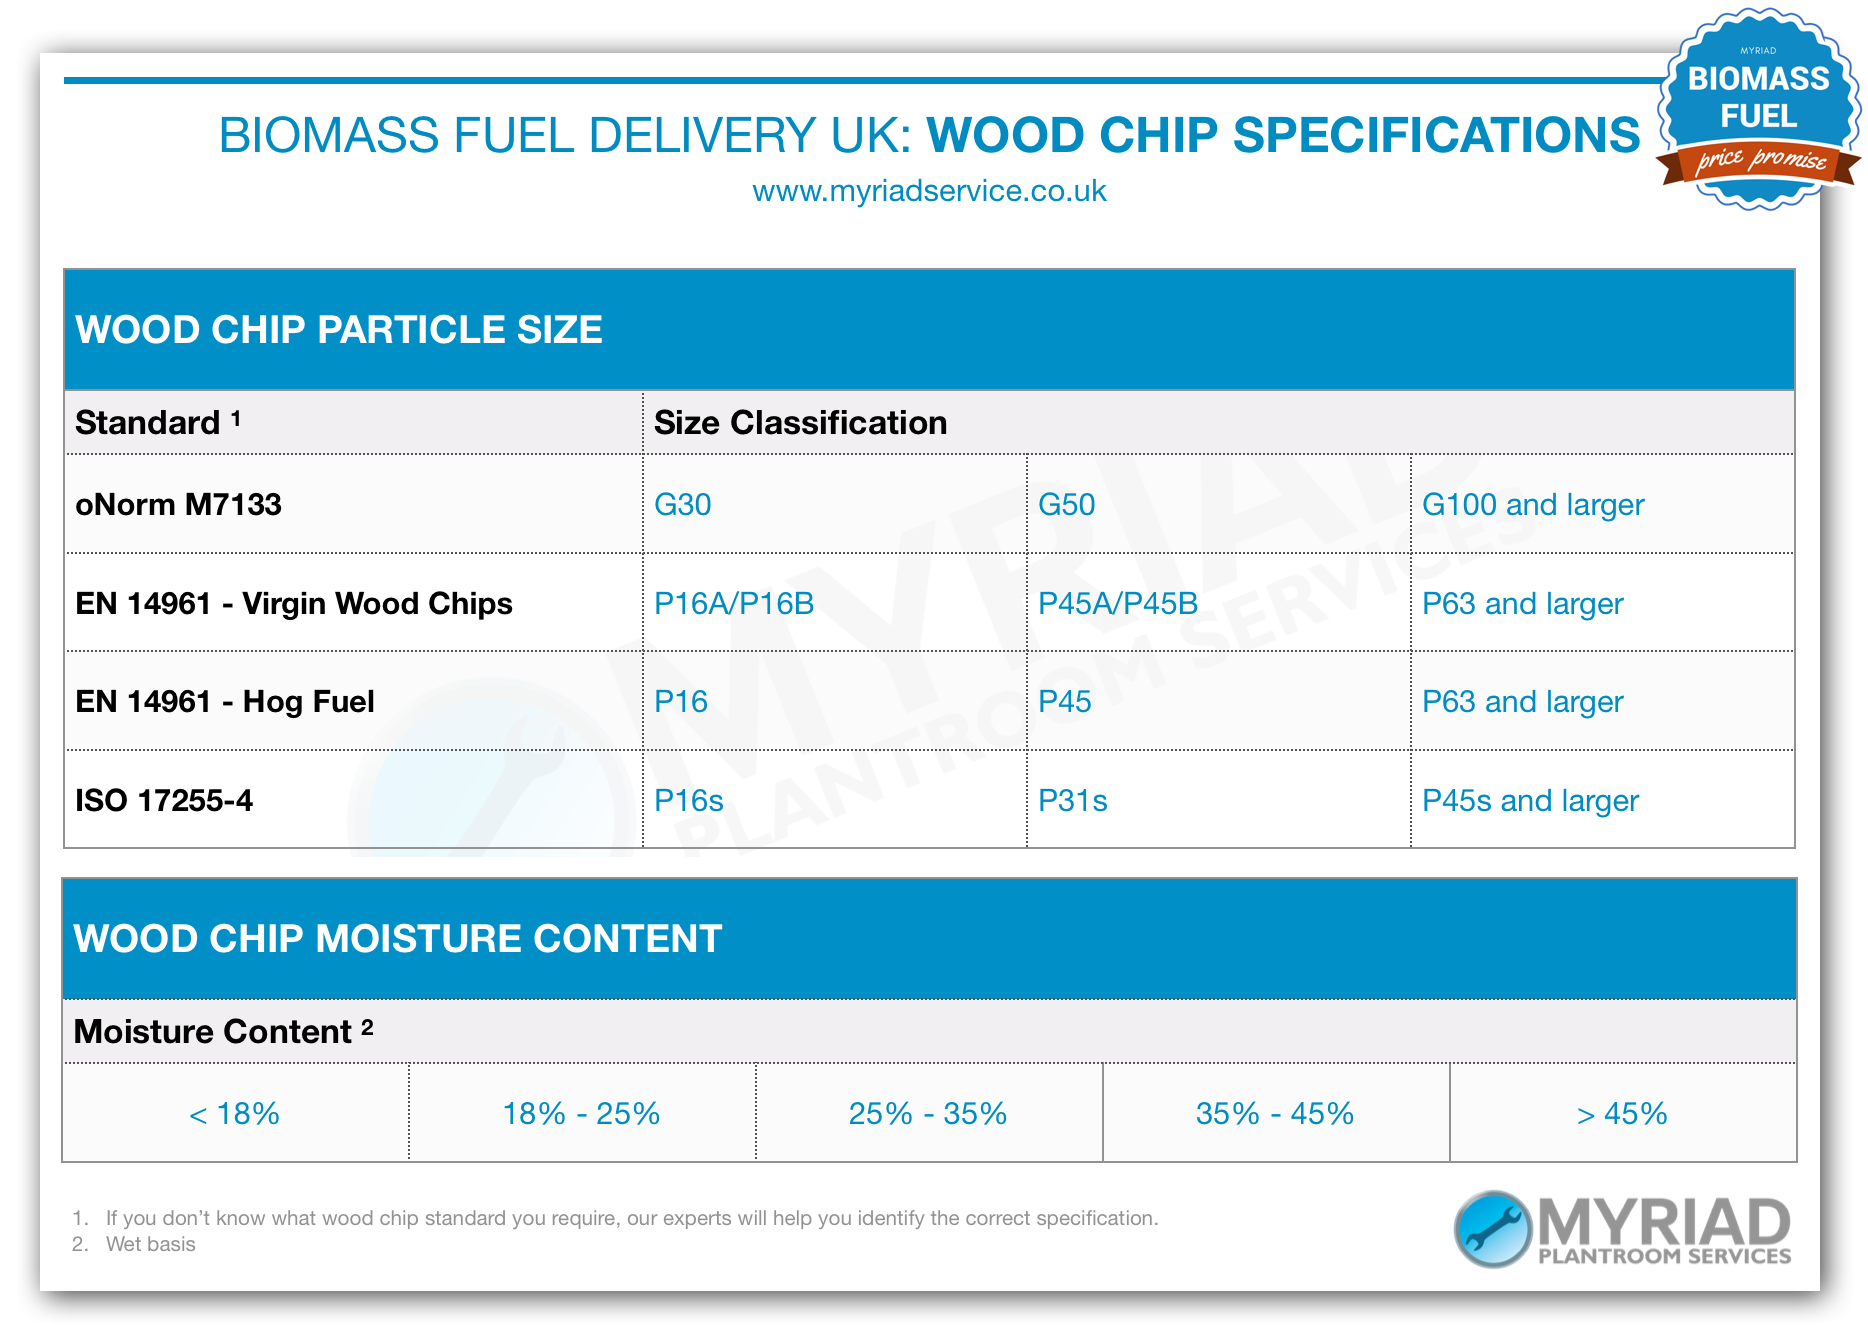 wood-chip-specification-biomass-fuel-supplier-Myriad.png